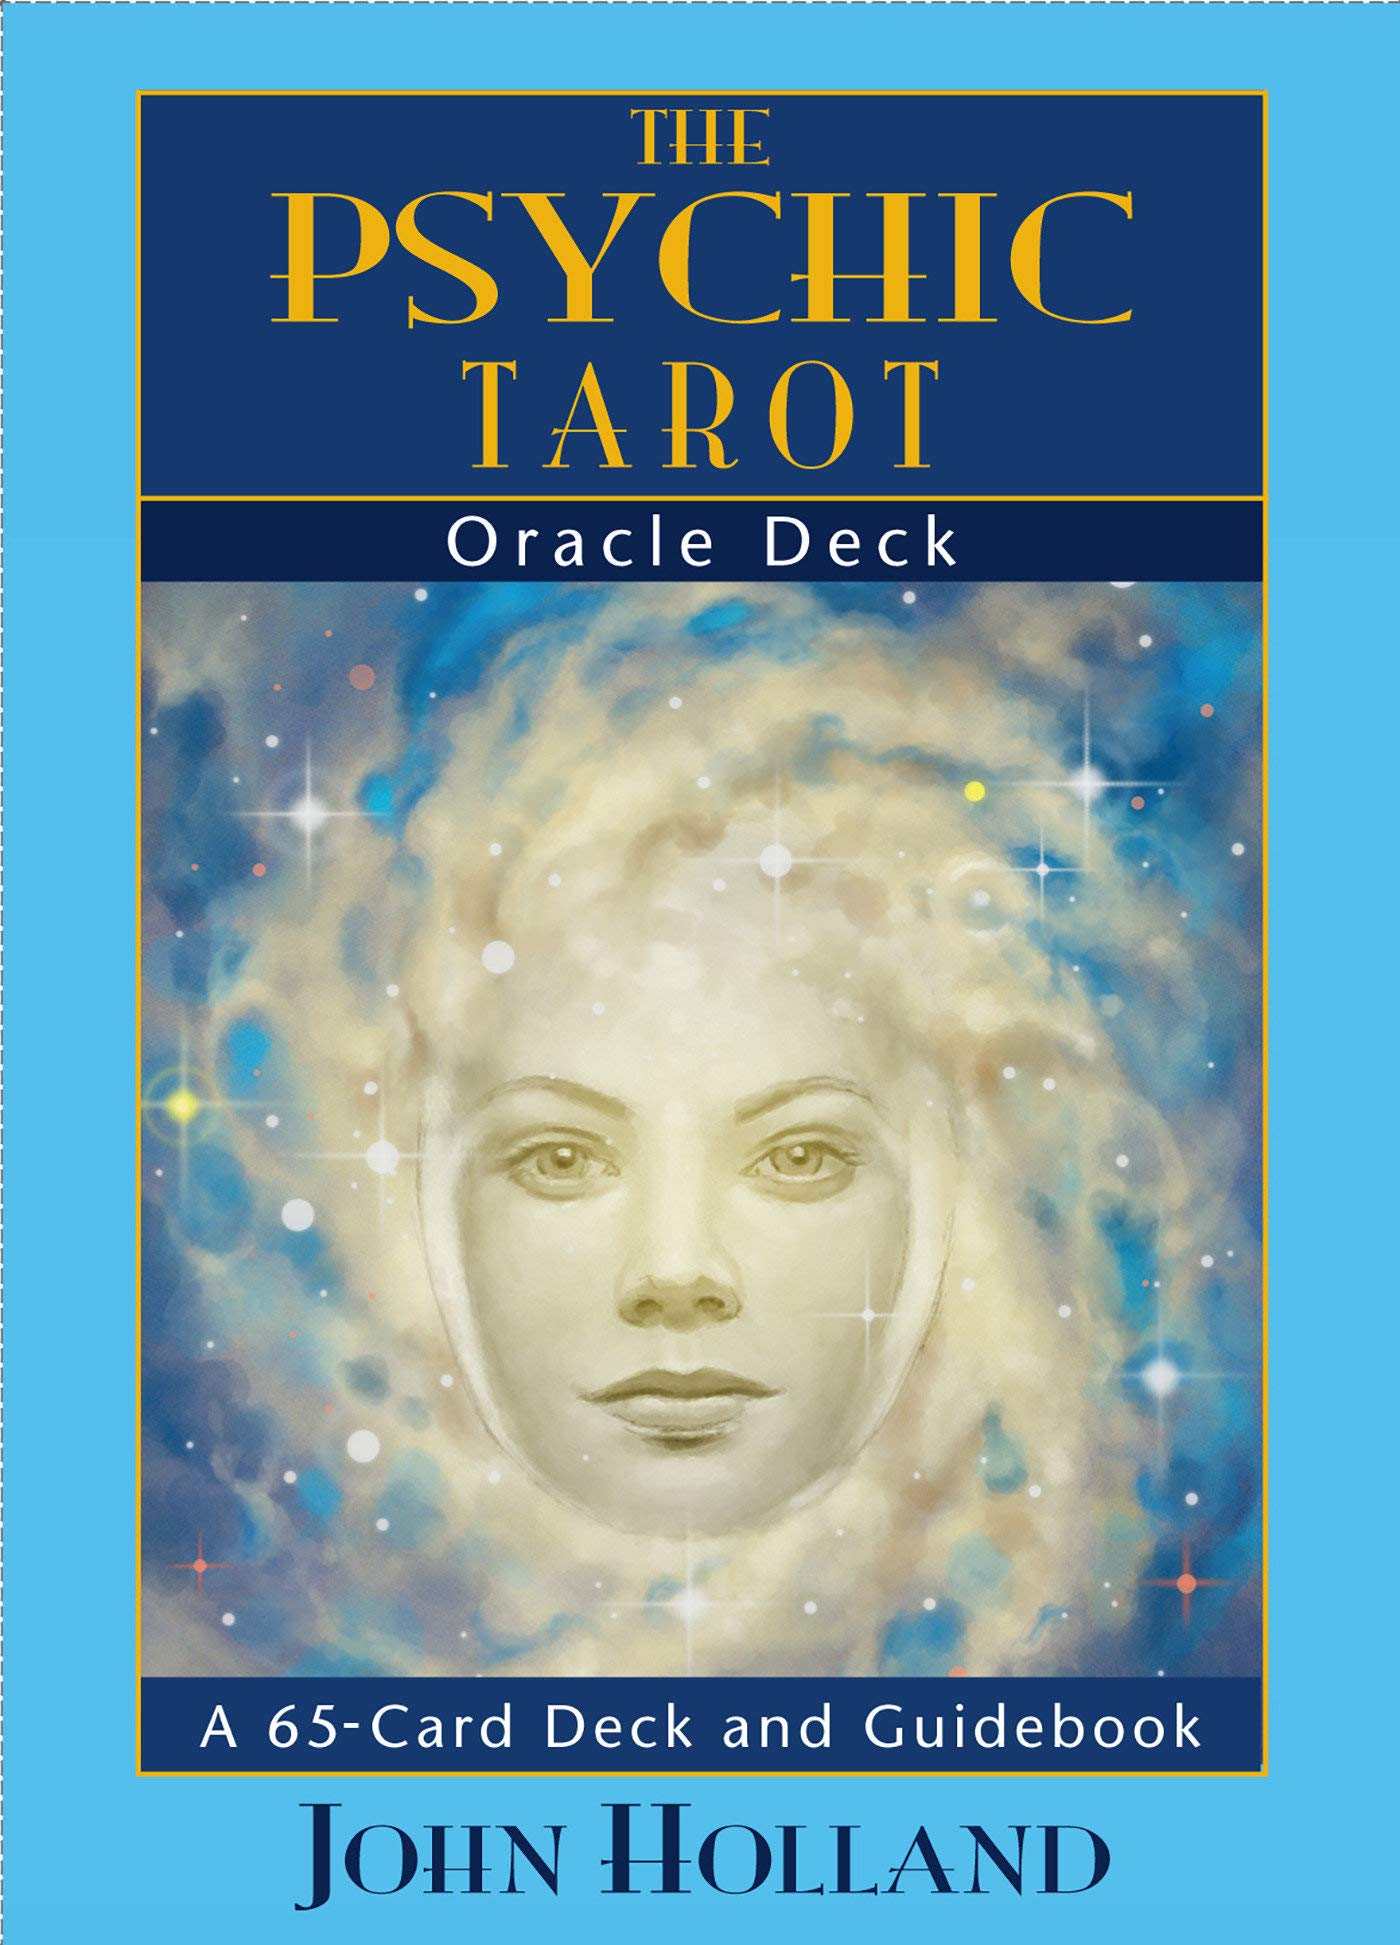 The Psychic Tarot Oracle Cards: a 65-Card Deck, plus booklet!